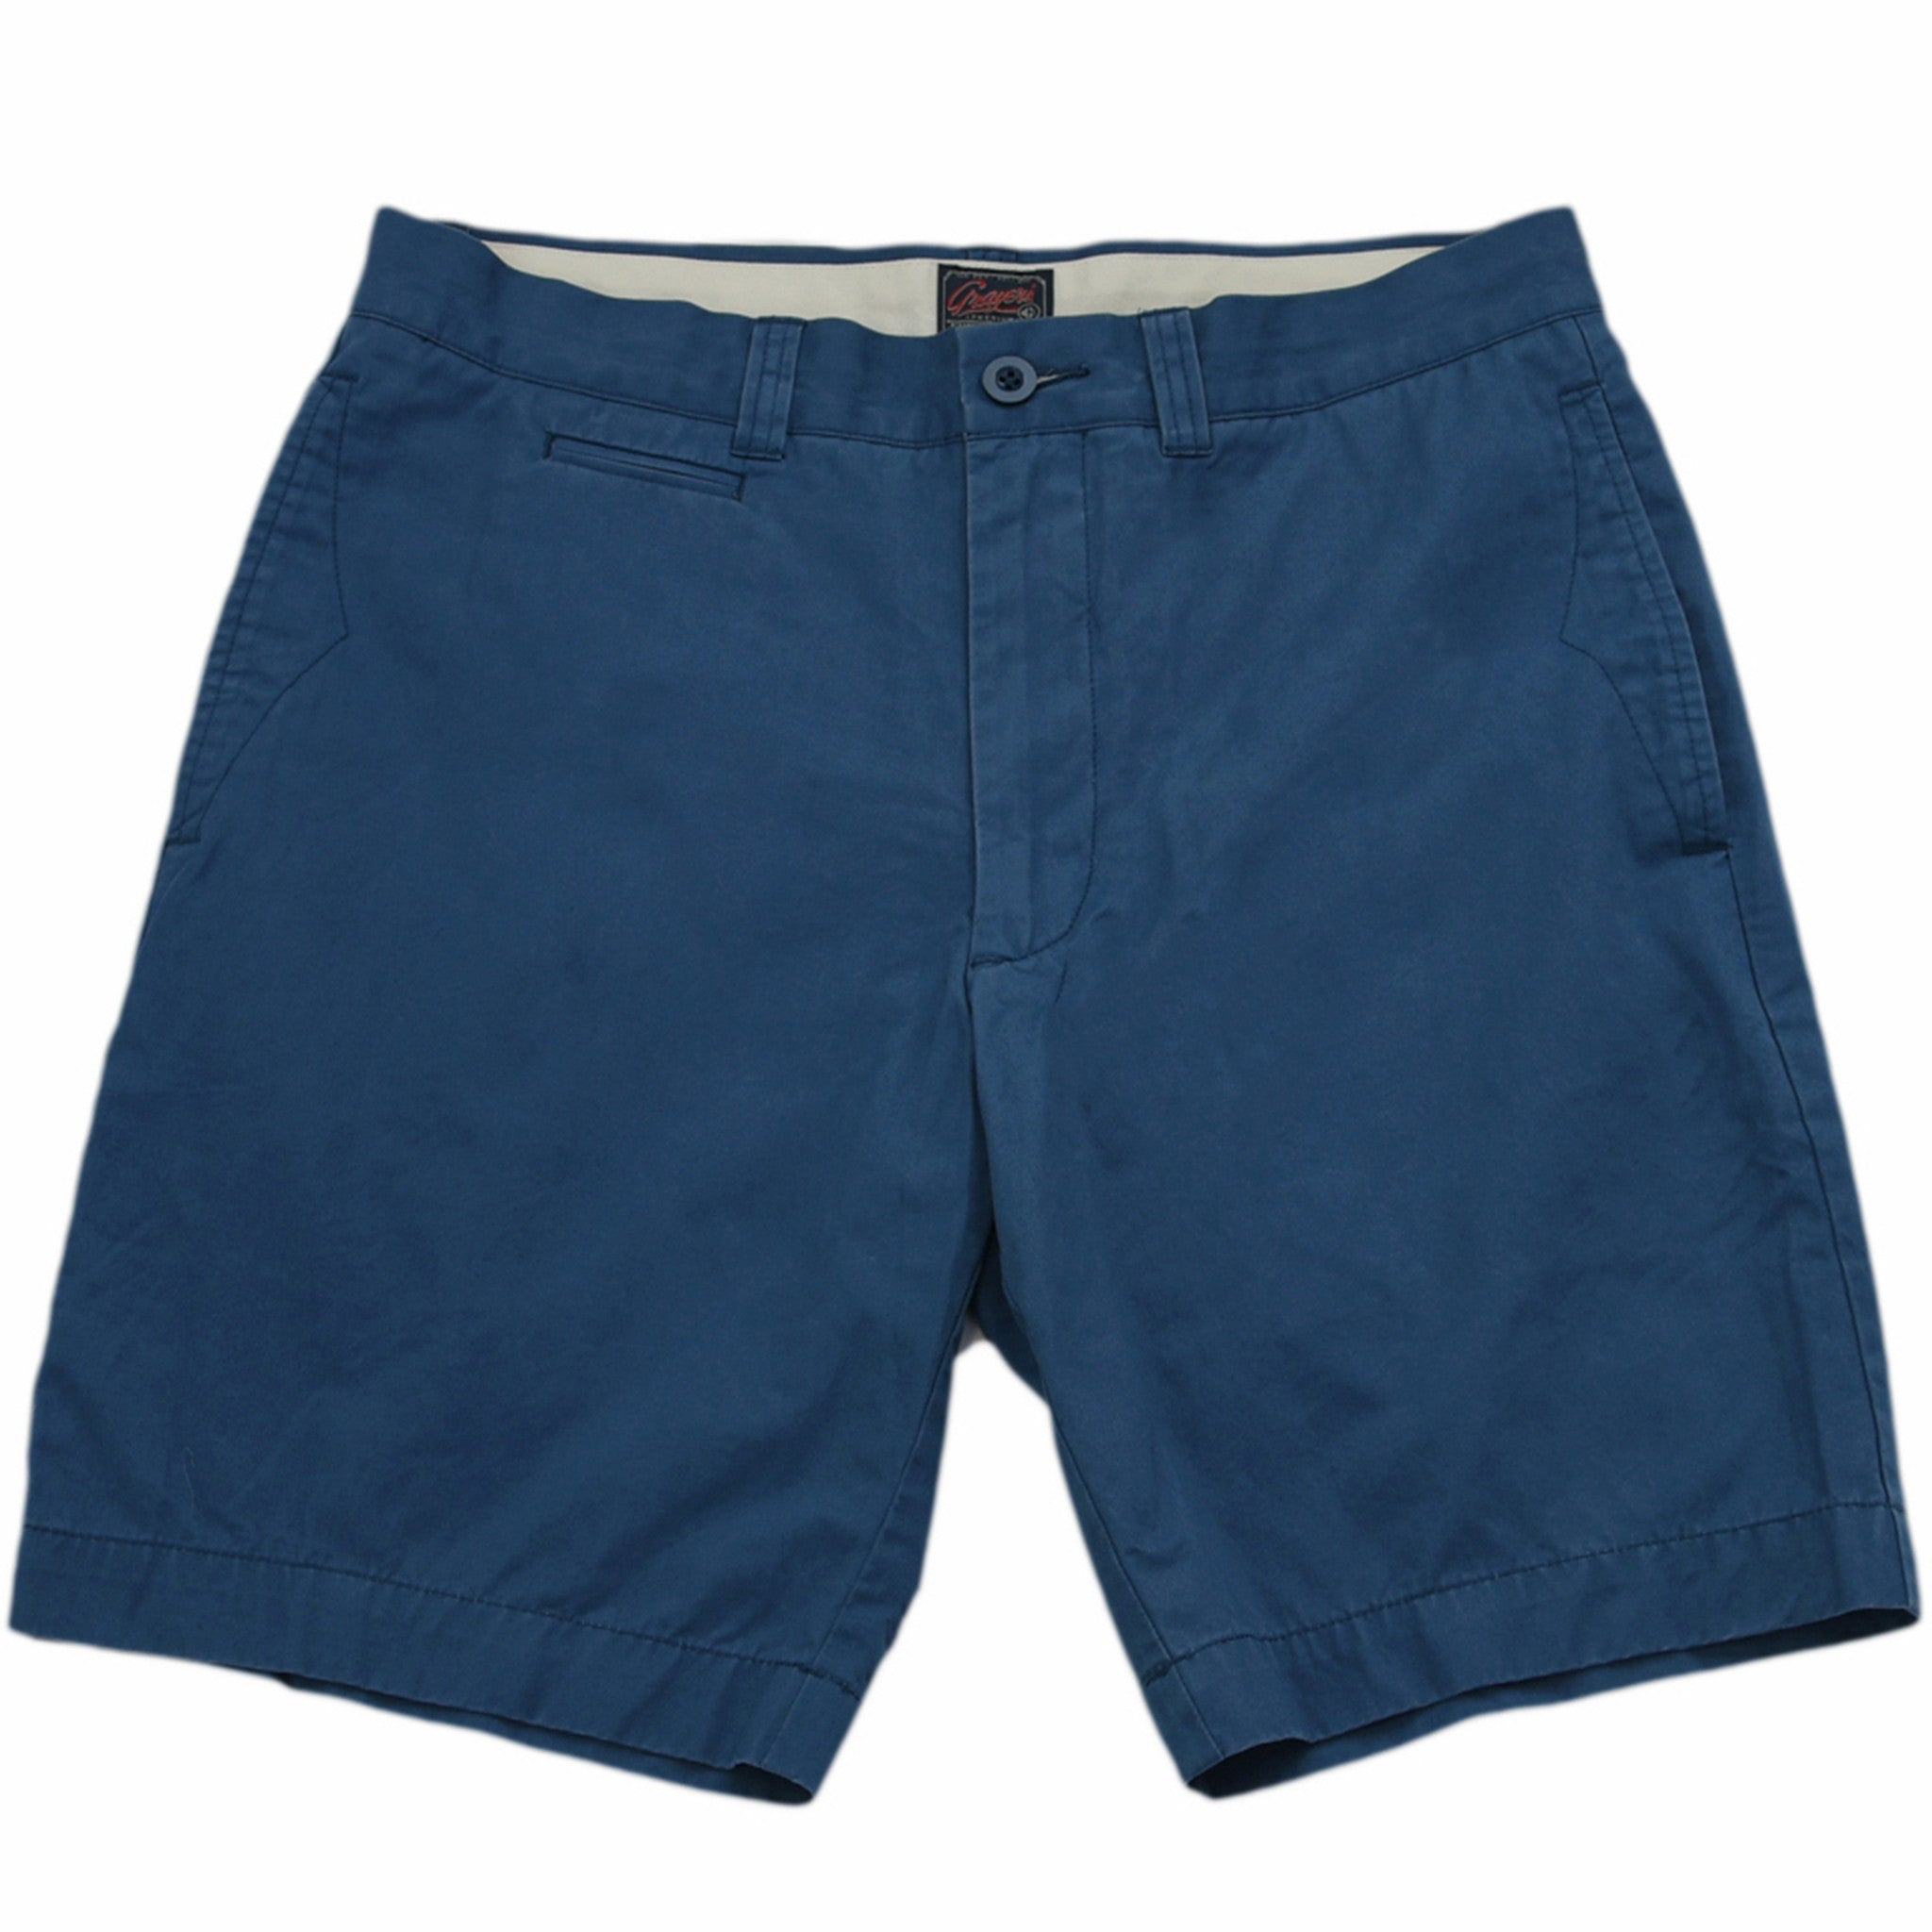 "9"" Newport Classic Club Short - Military Blue"